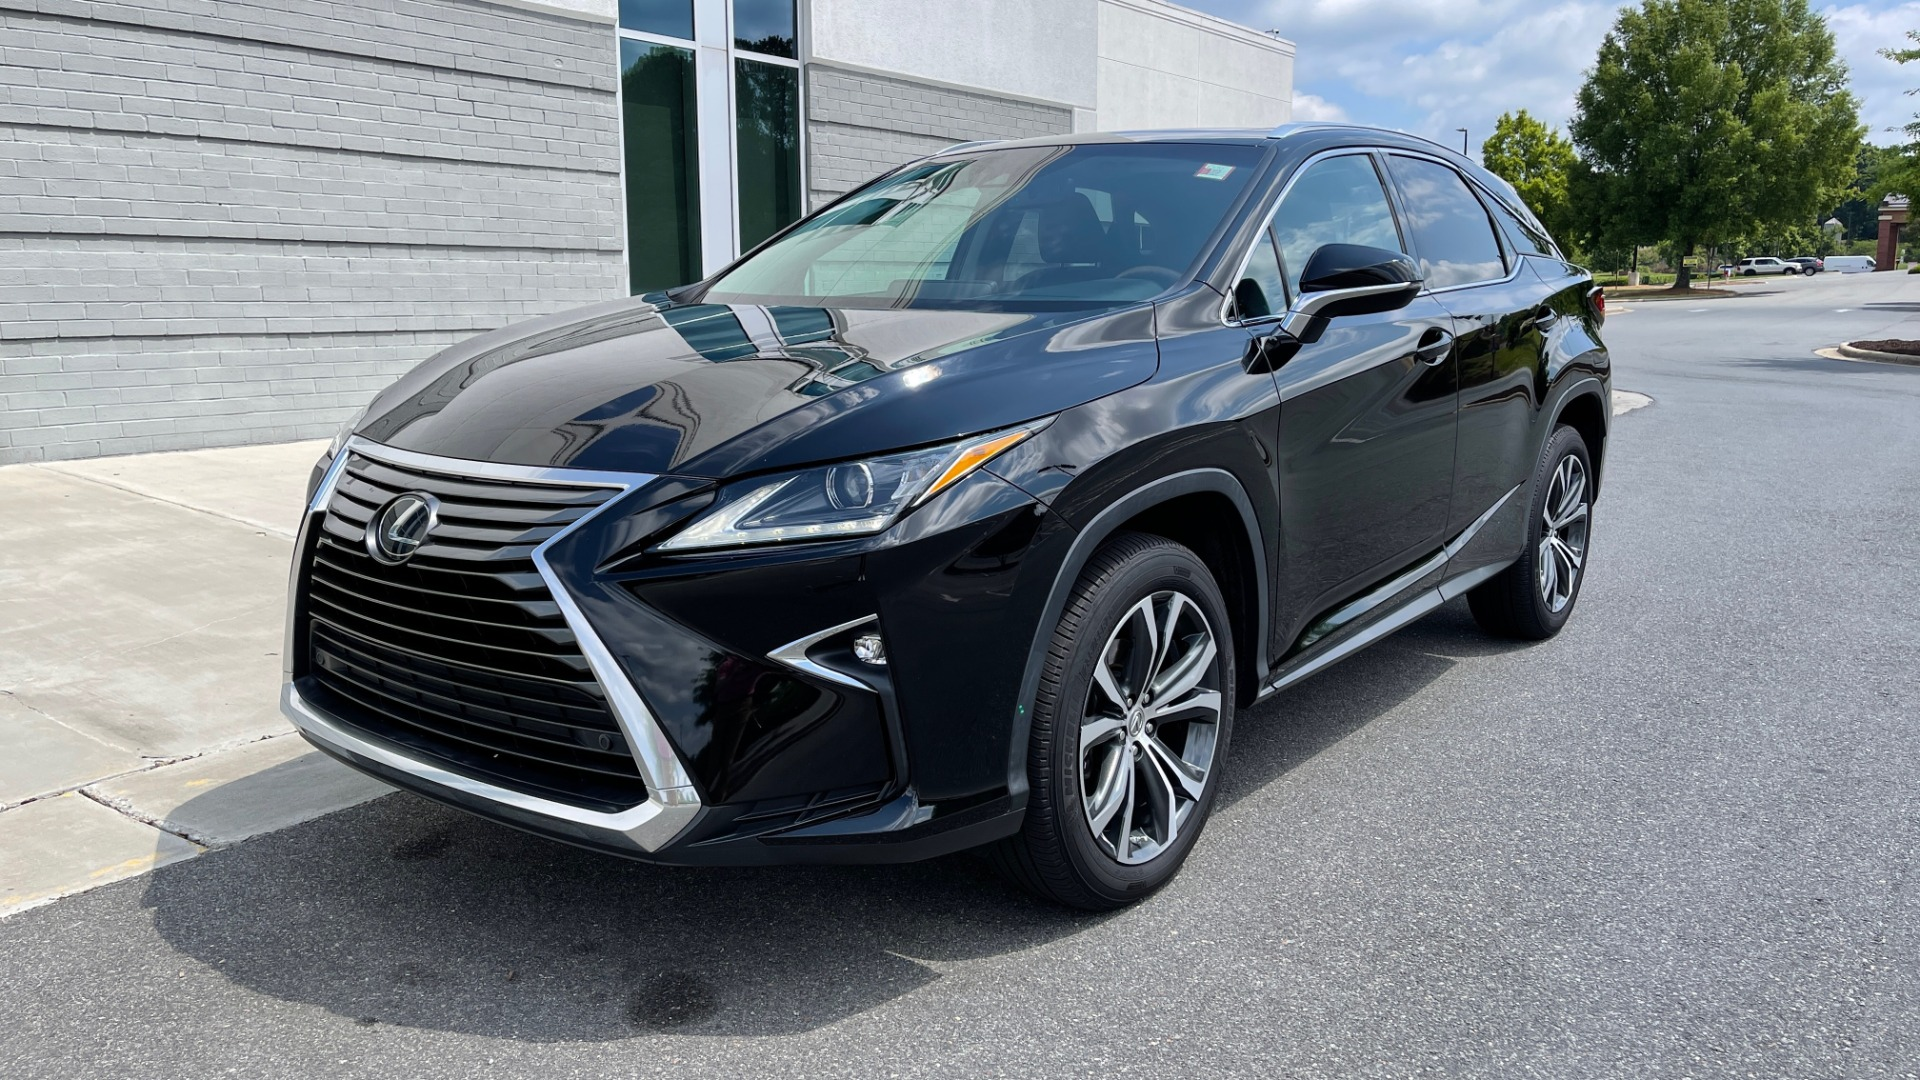 Used 2016 Lexus RX 350 PREMIUM / NAV / SUNROOF / BSM / PARK ASST / REARVIEW for sale $29,495 at Formula Imports in Charlotte NC 28227 3